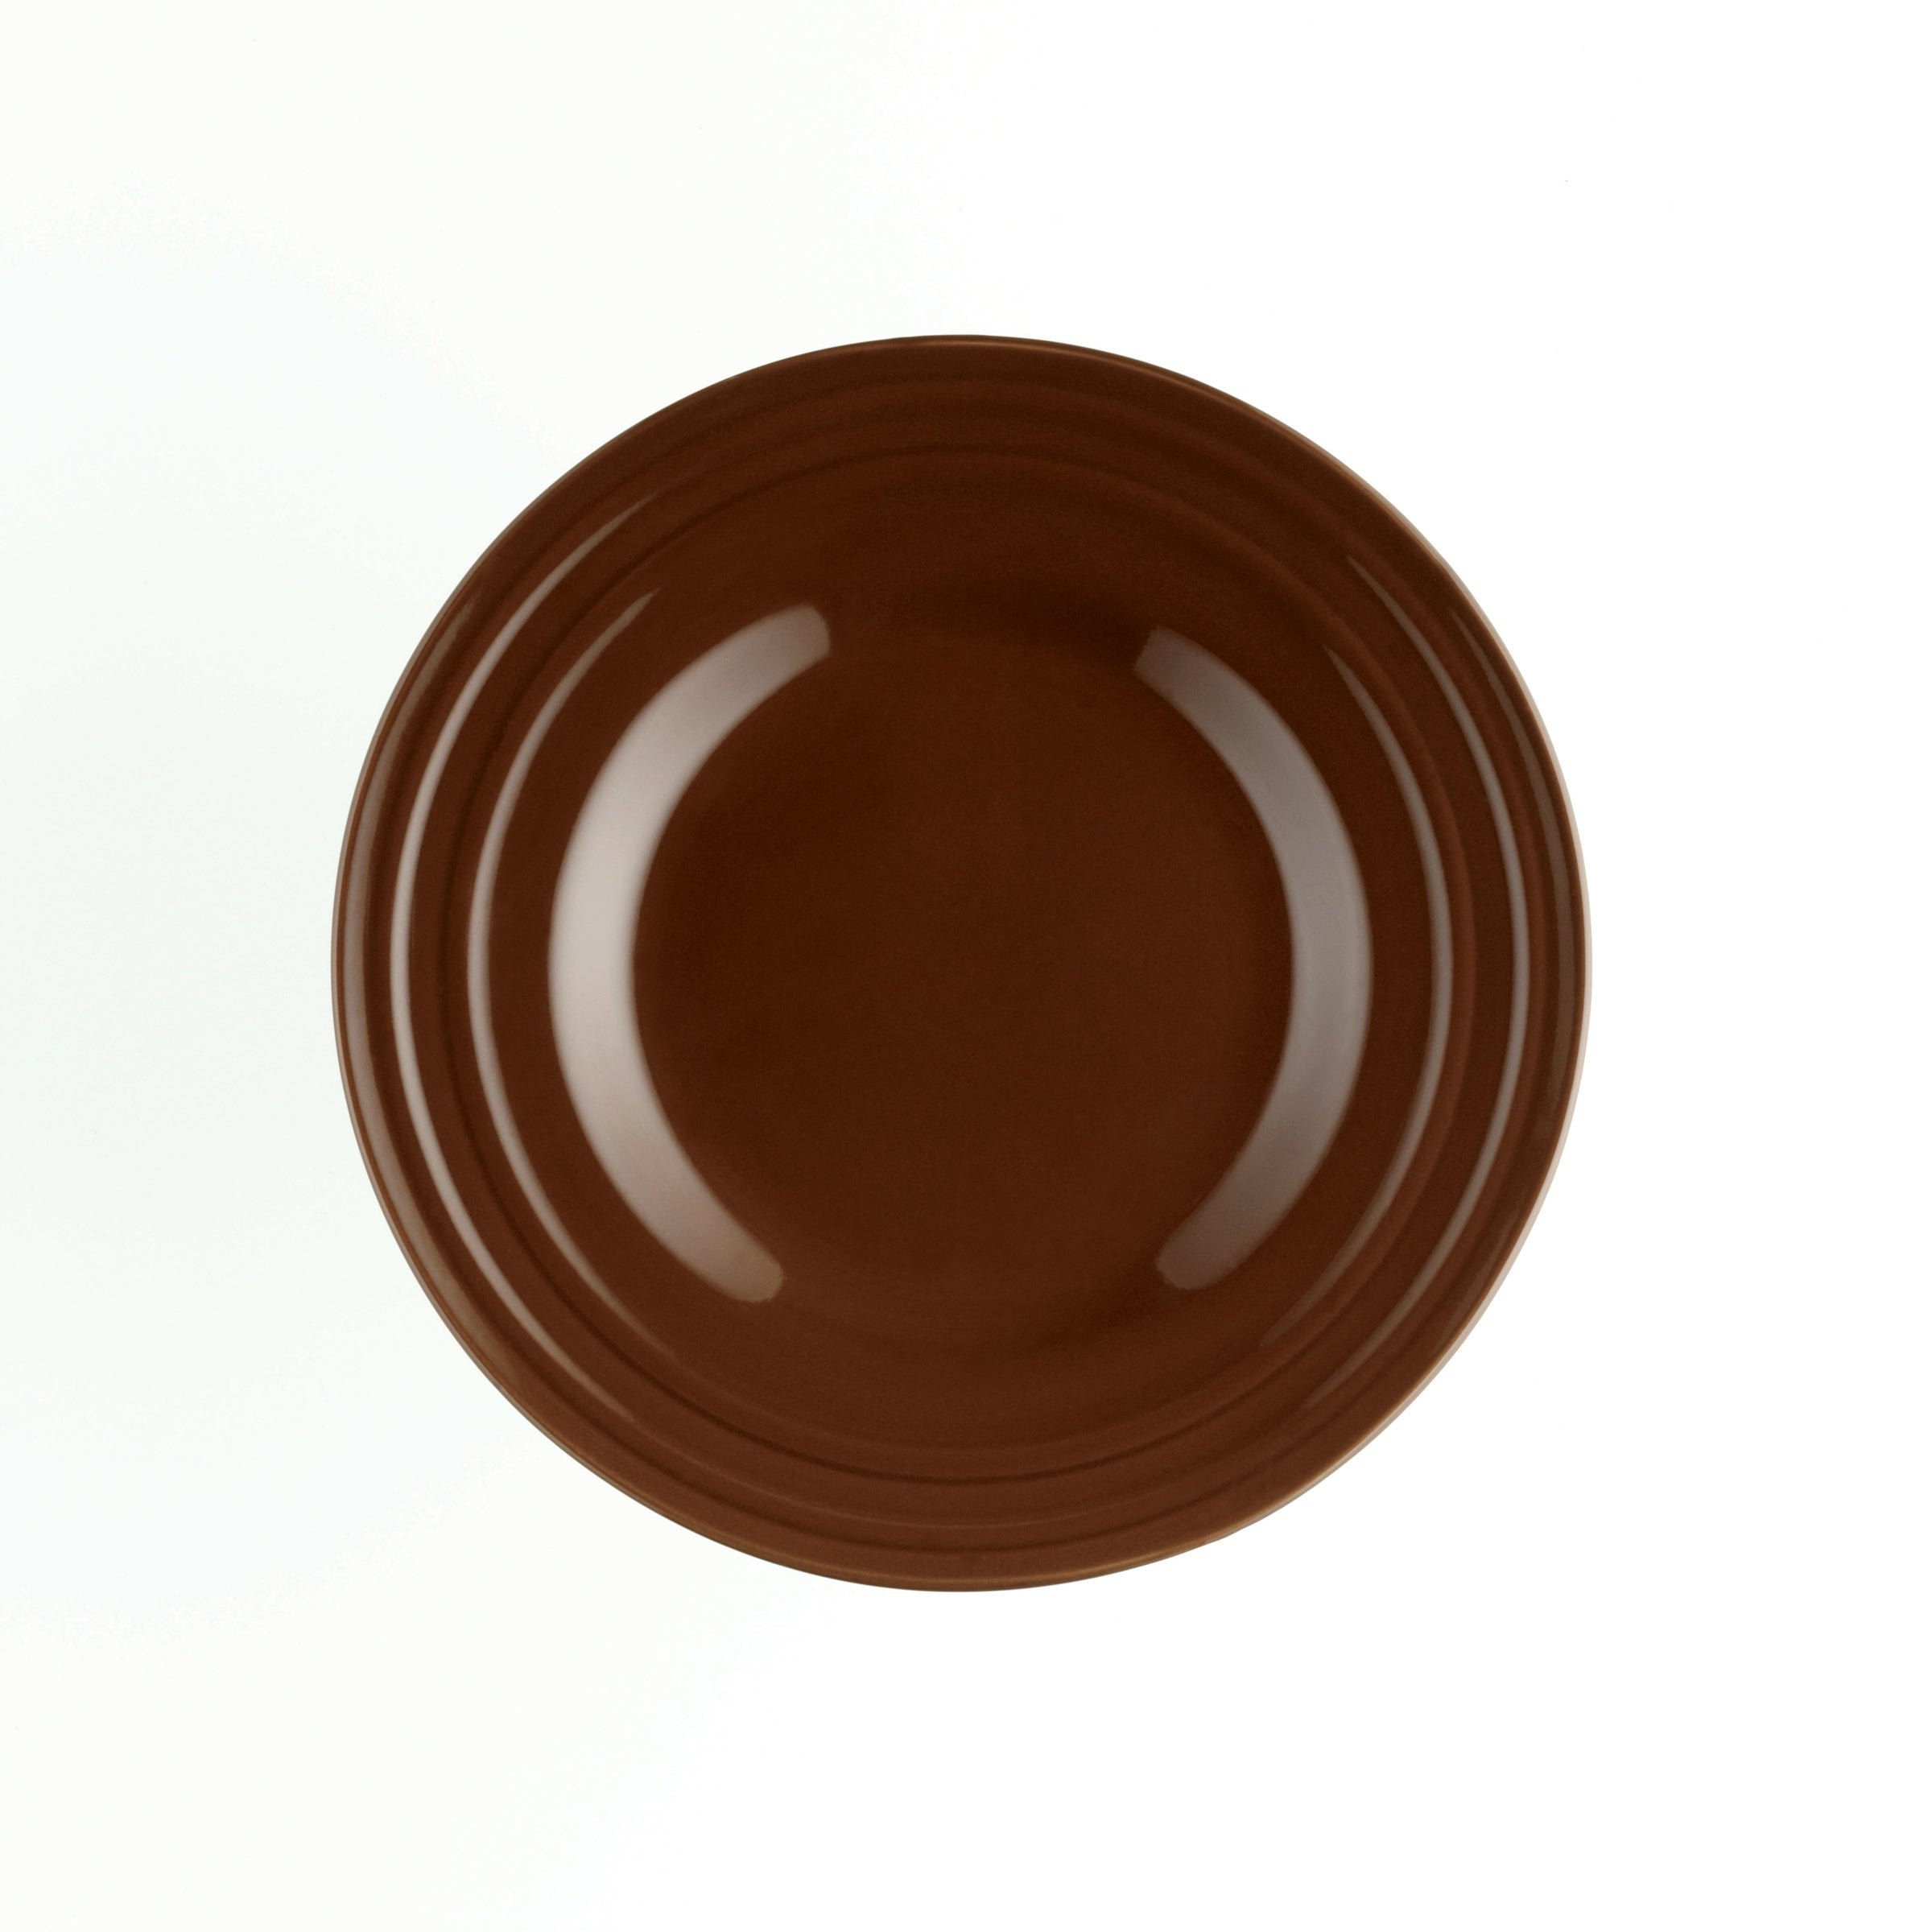 Rachael Ray Double Ridge Brown 8-inch Salad Plates (Set of 4) - Free Shipping On Orders Over $45 - Overstock - 14916695  sc 1 st  Overstock.com & Rachael Ray Double Ridge Brown 8-inch Salad Plates (Set of 4) - Free ...